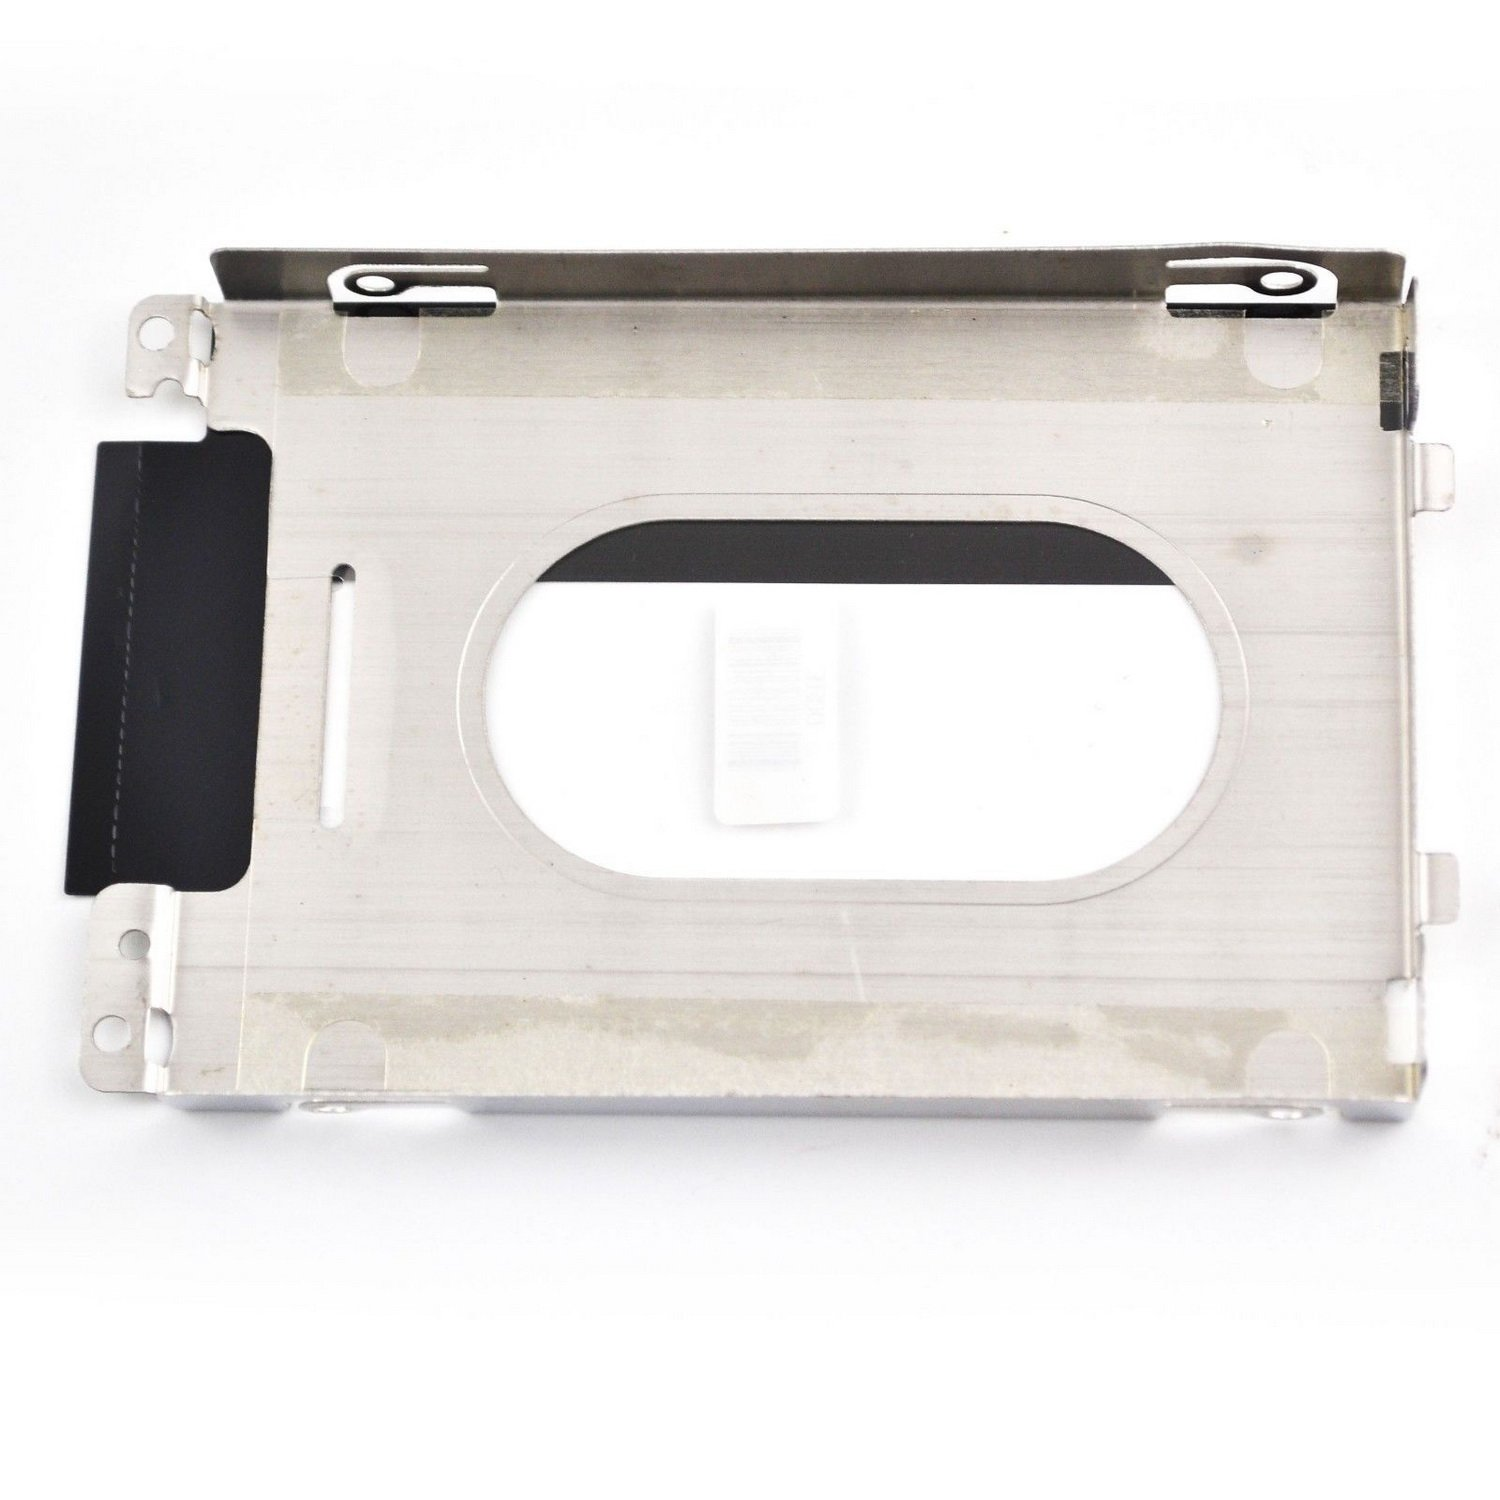 New HDD Hard Drive Caddy Tray 434106-001 For HP Pavilion DV9100 Series